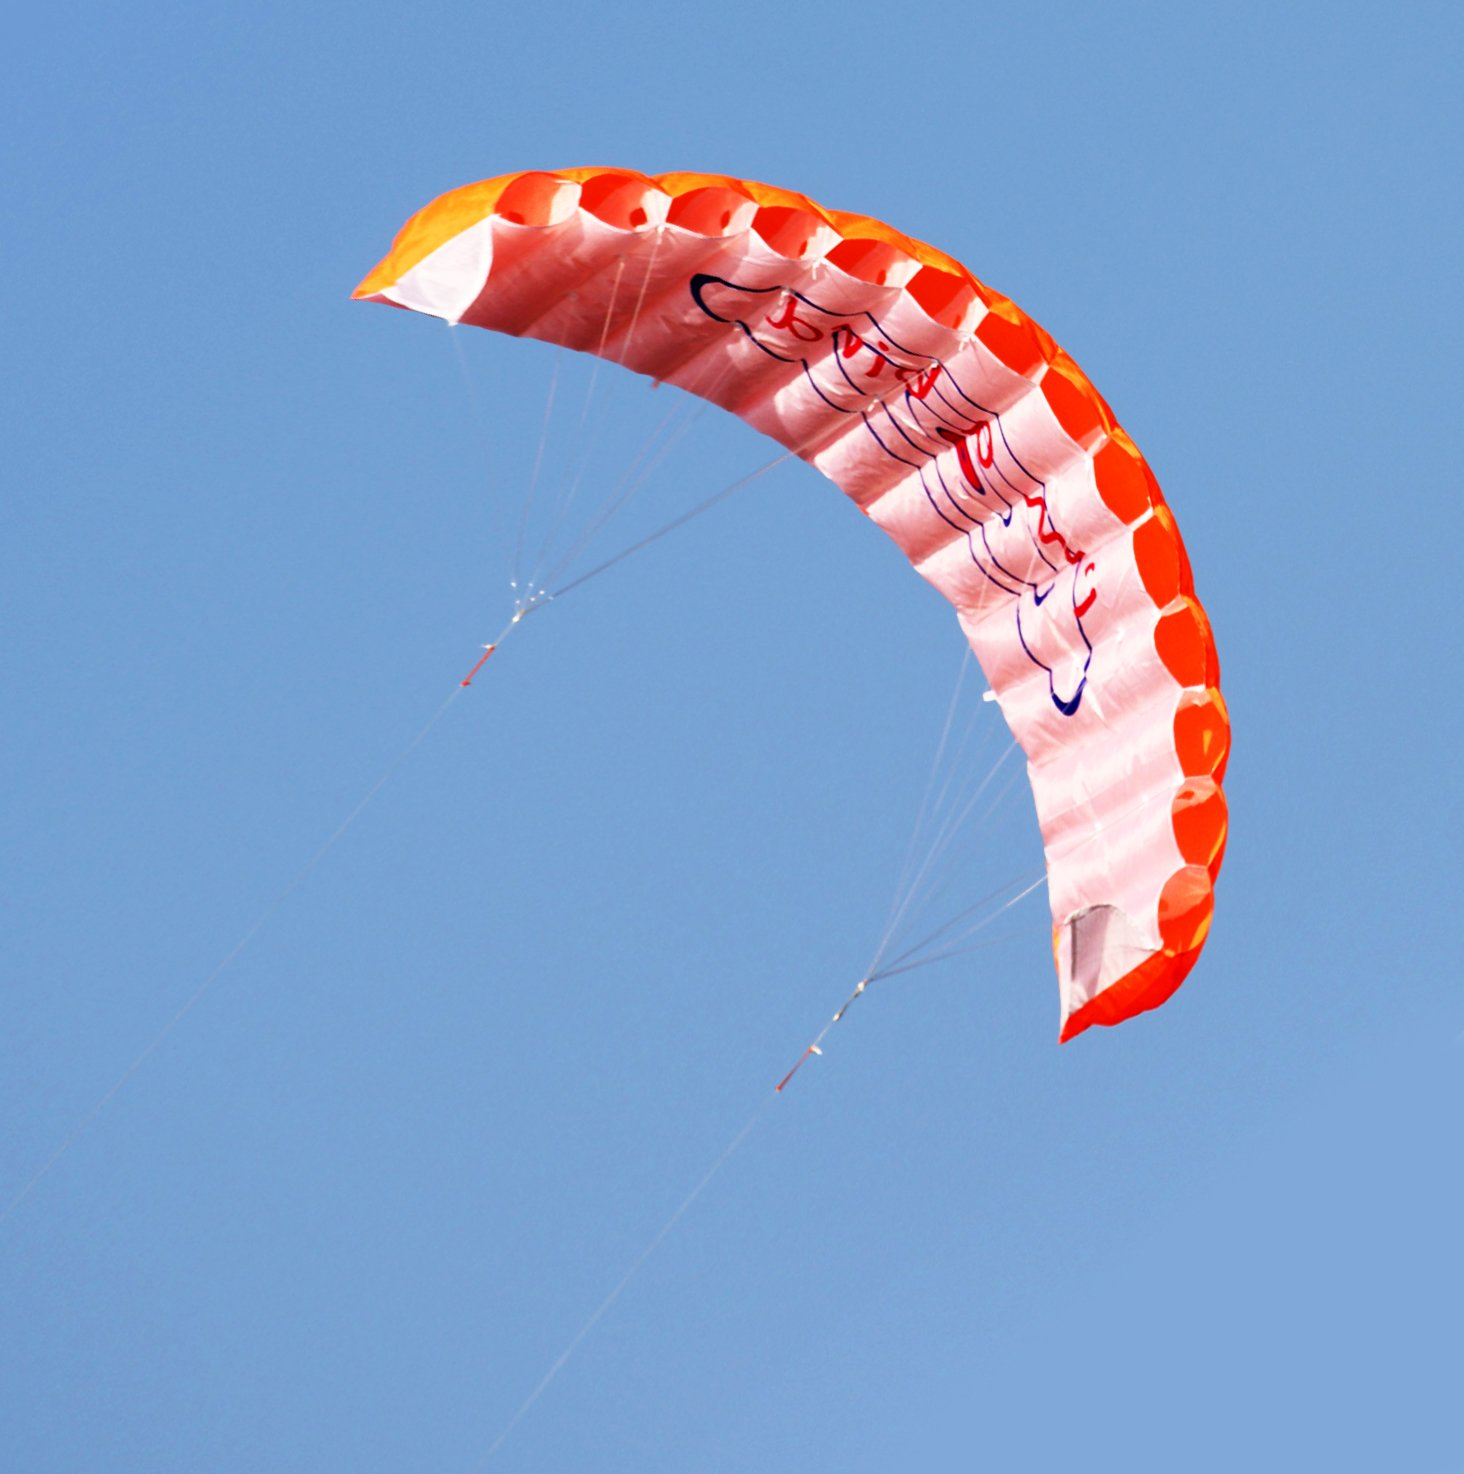 Hengda Kite NEW 1.4m Power Kite Outdoor FUN Toys Parafoil Parachute Dual Line Surfing ORANGE by Hengda kite (Image #4)